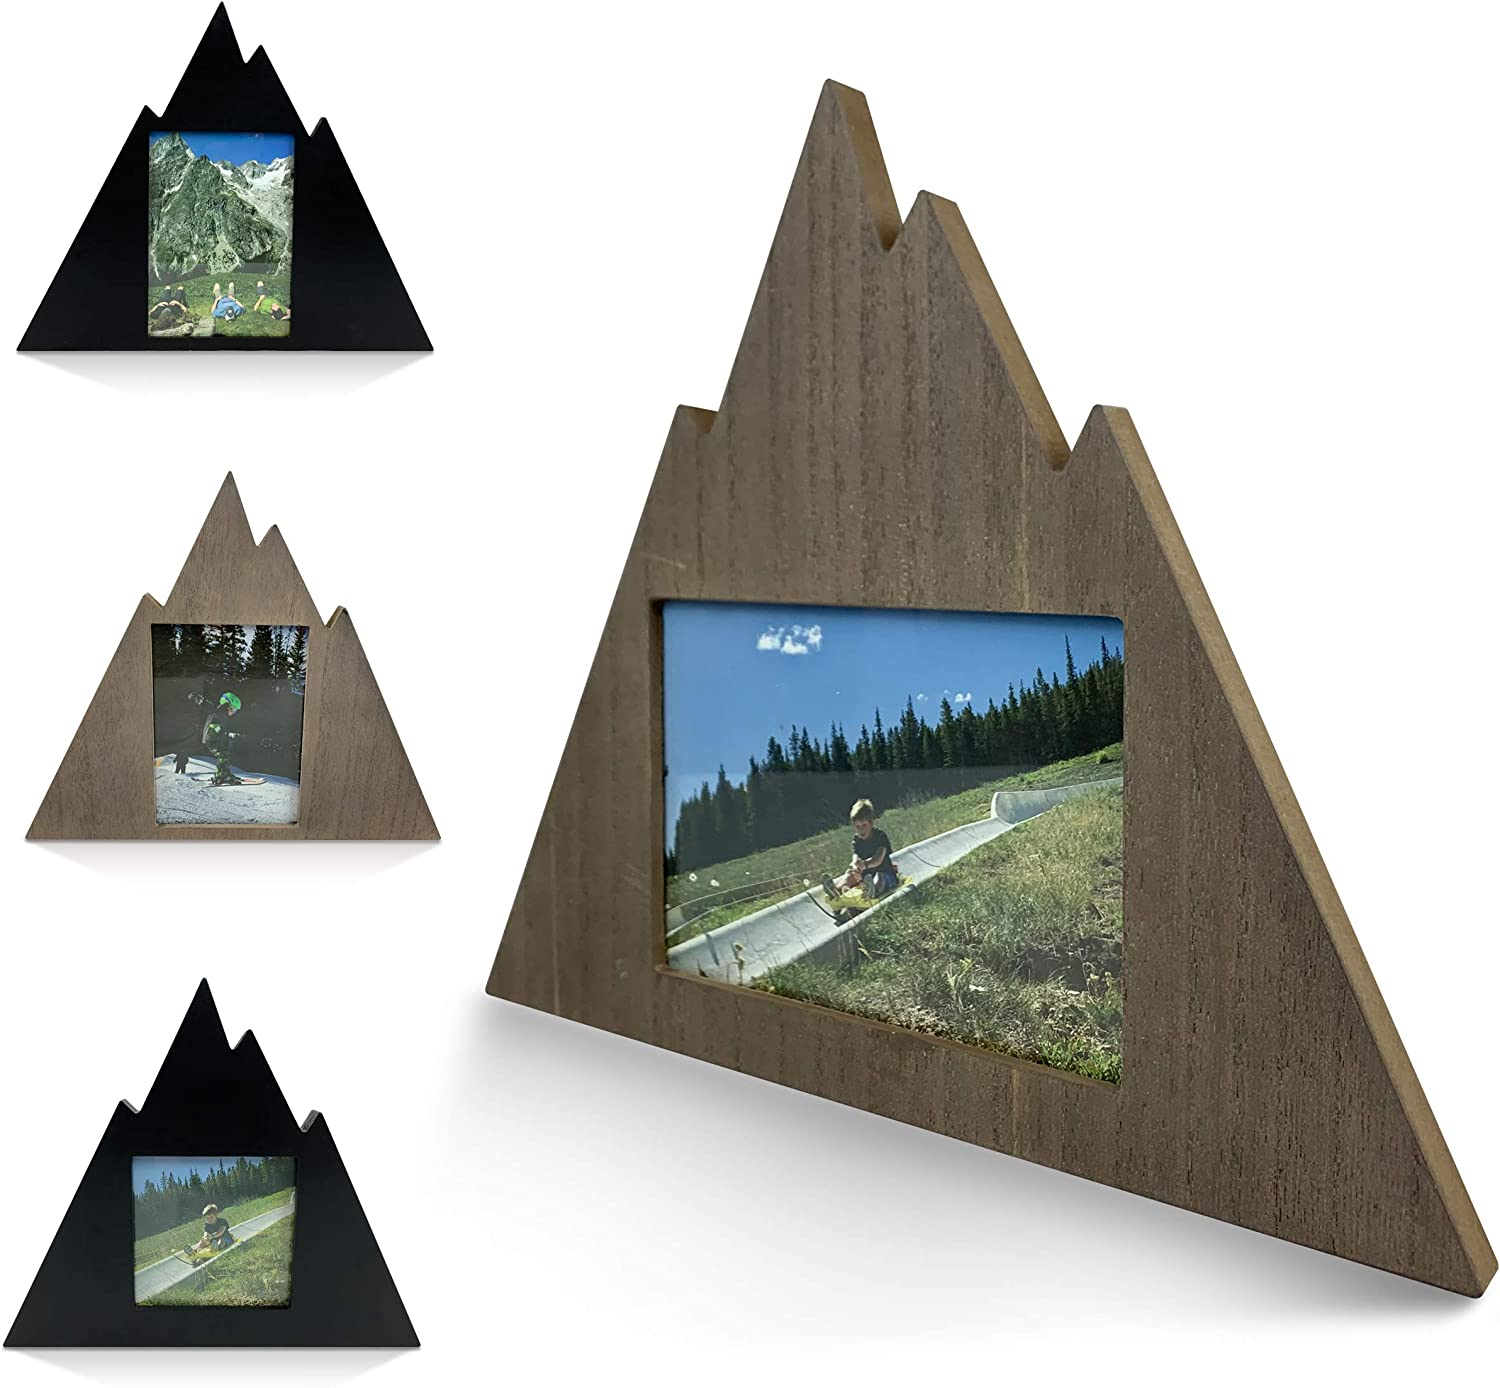 Mountain Shaped Outdoor Picture Photo Frame - Contemporary Geometric Modern Home Mountain Cabin Decor Wooden Wall Picture Frame (Rustic Gray - 5x7 Picture Frame - Horizontal)